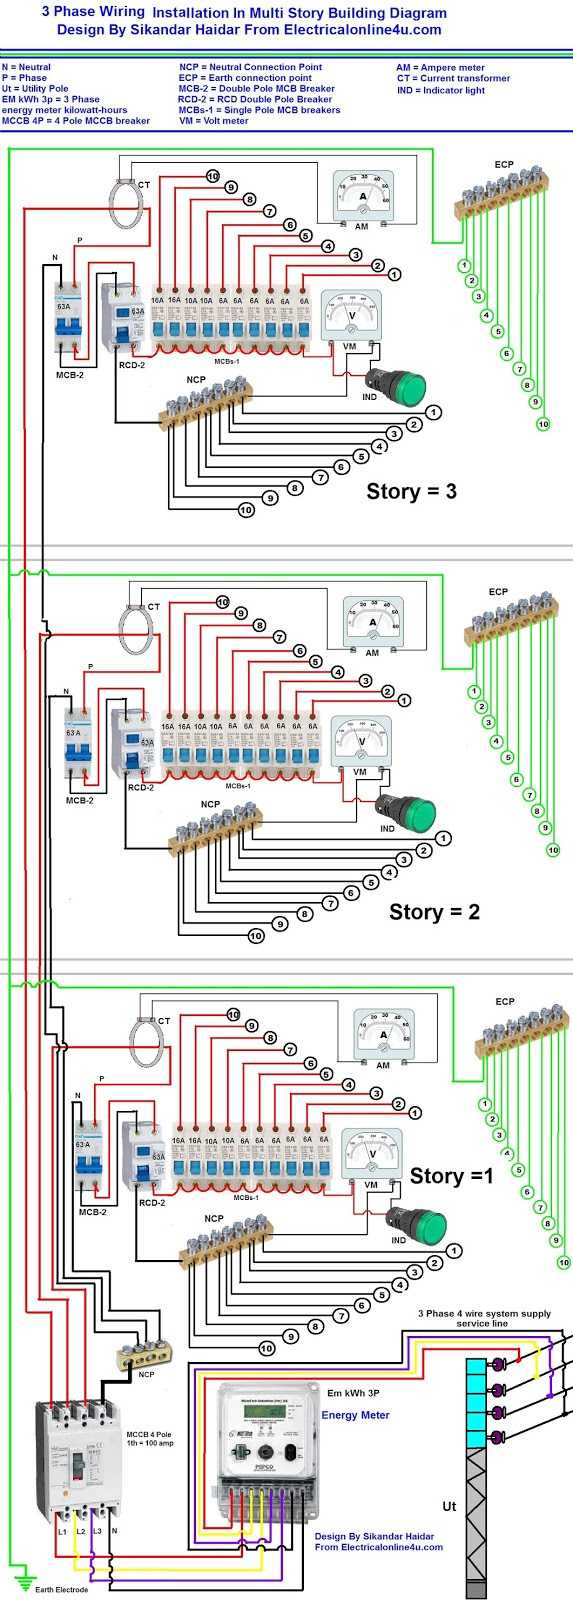 3 phase distribution board diagram for multi story house on wiring diagram in building